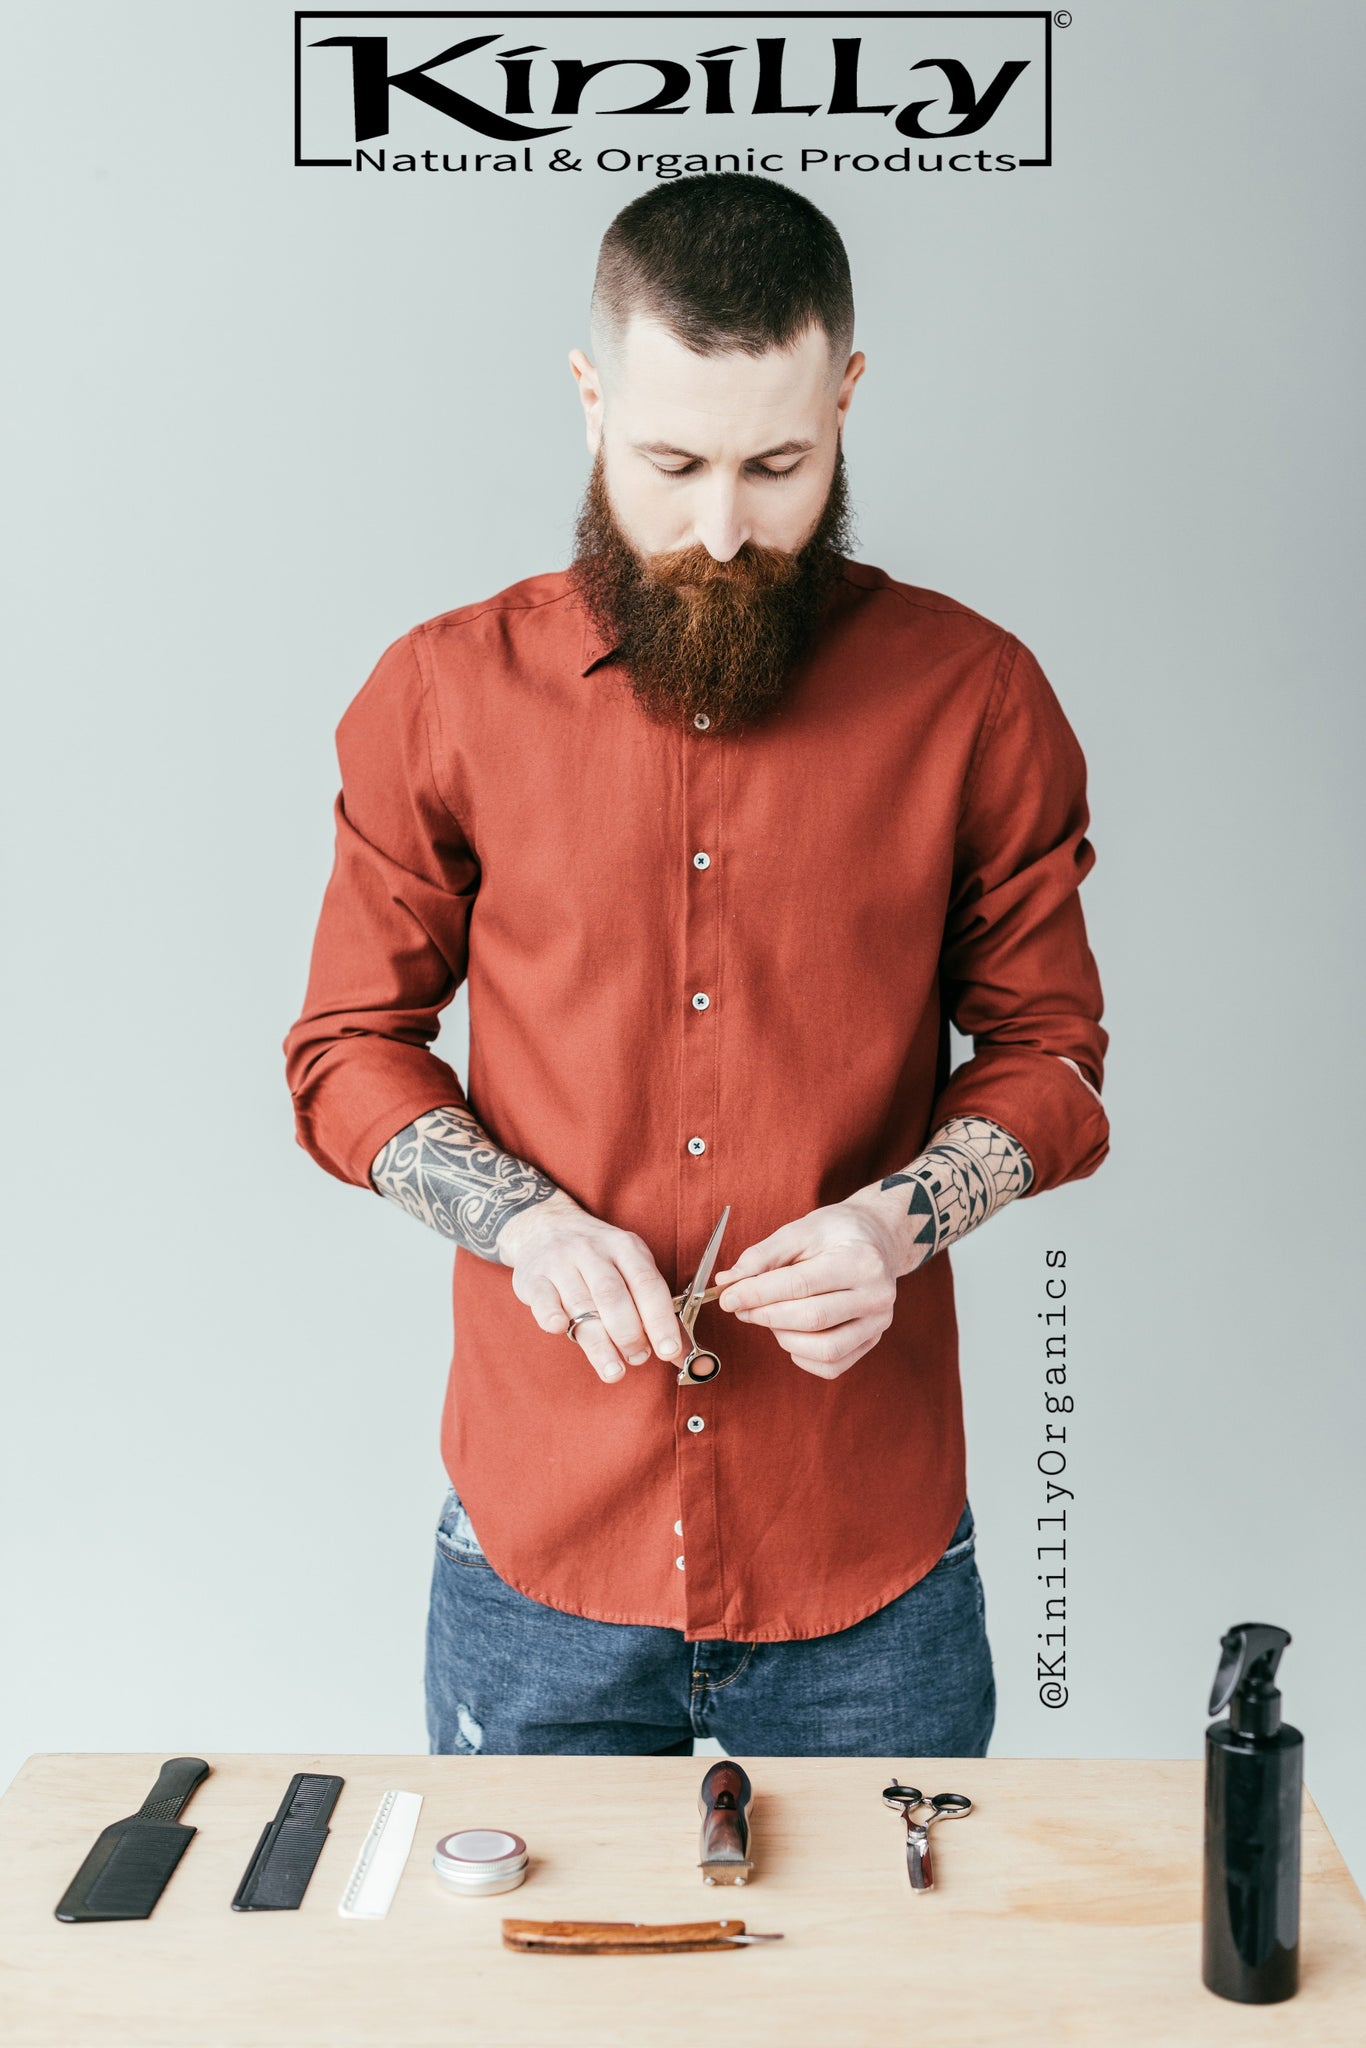 Beard Care: Beard Grooming Tips on Maintaining a Great Beard